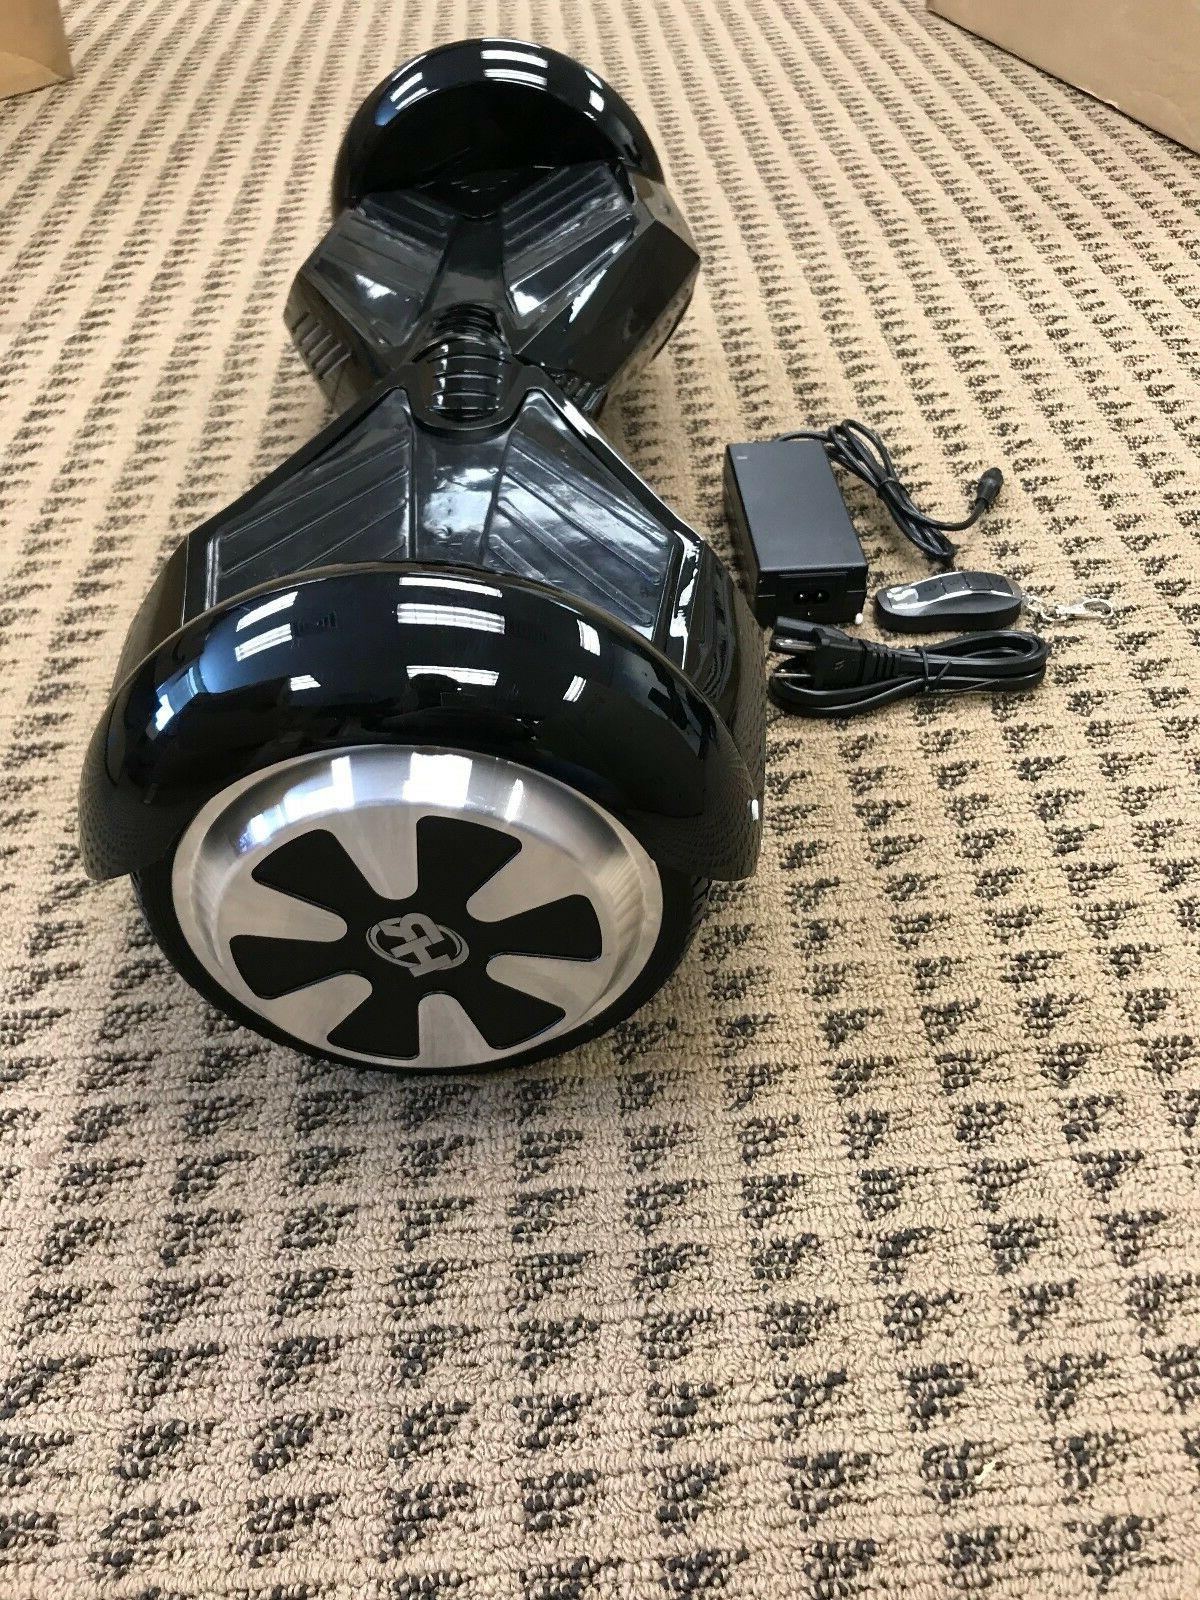 THE SELF ELECTRIC SCOOTER 2272